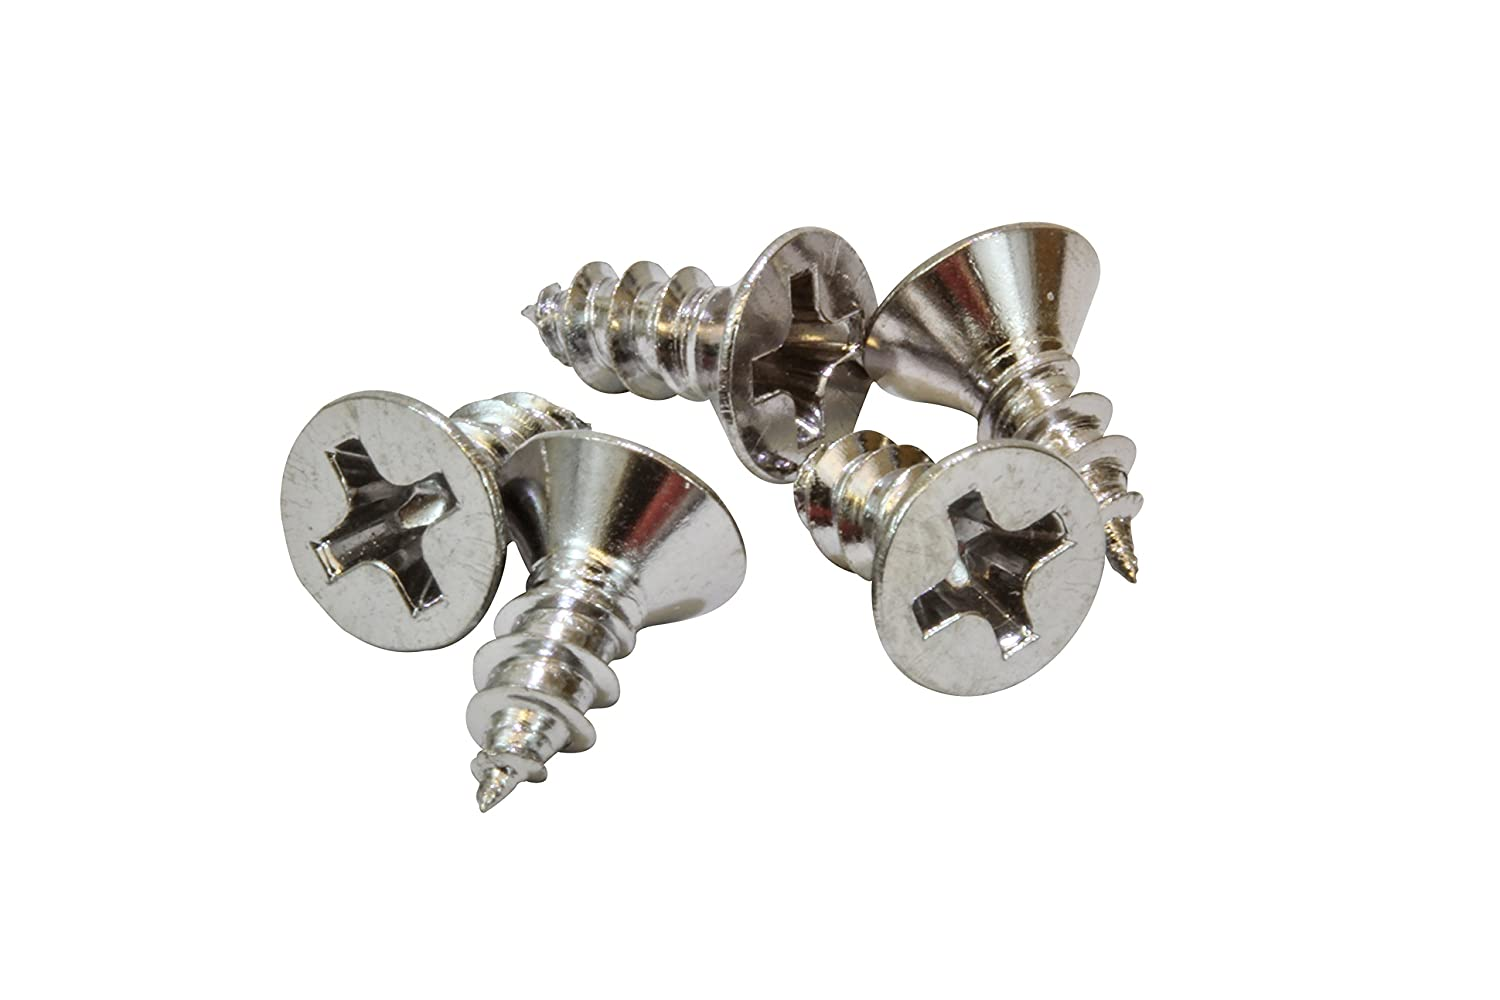 304 18-8 100 pc Stainless Steel Screw by Bolt Dropper #6 X 5//8 Chrome Coated Stainless Flat Head Phillips Wood Screw,